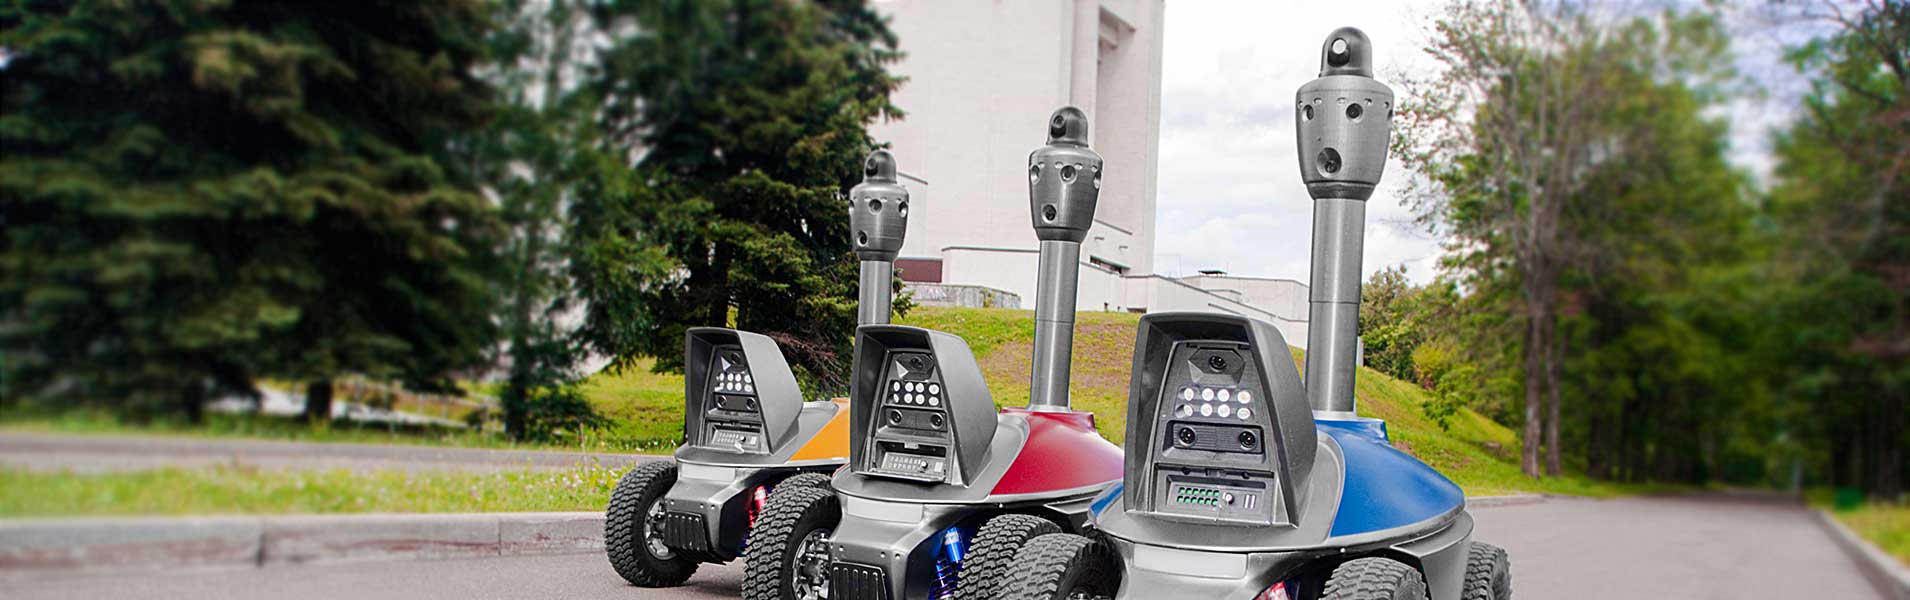 outdoor_security_robotic_system